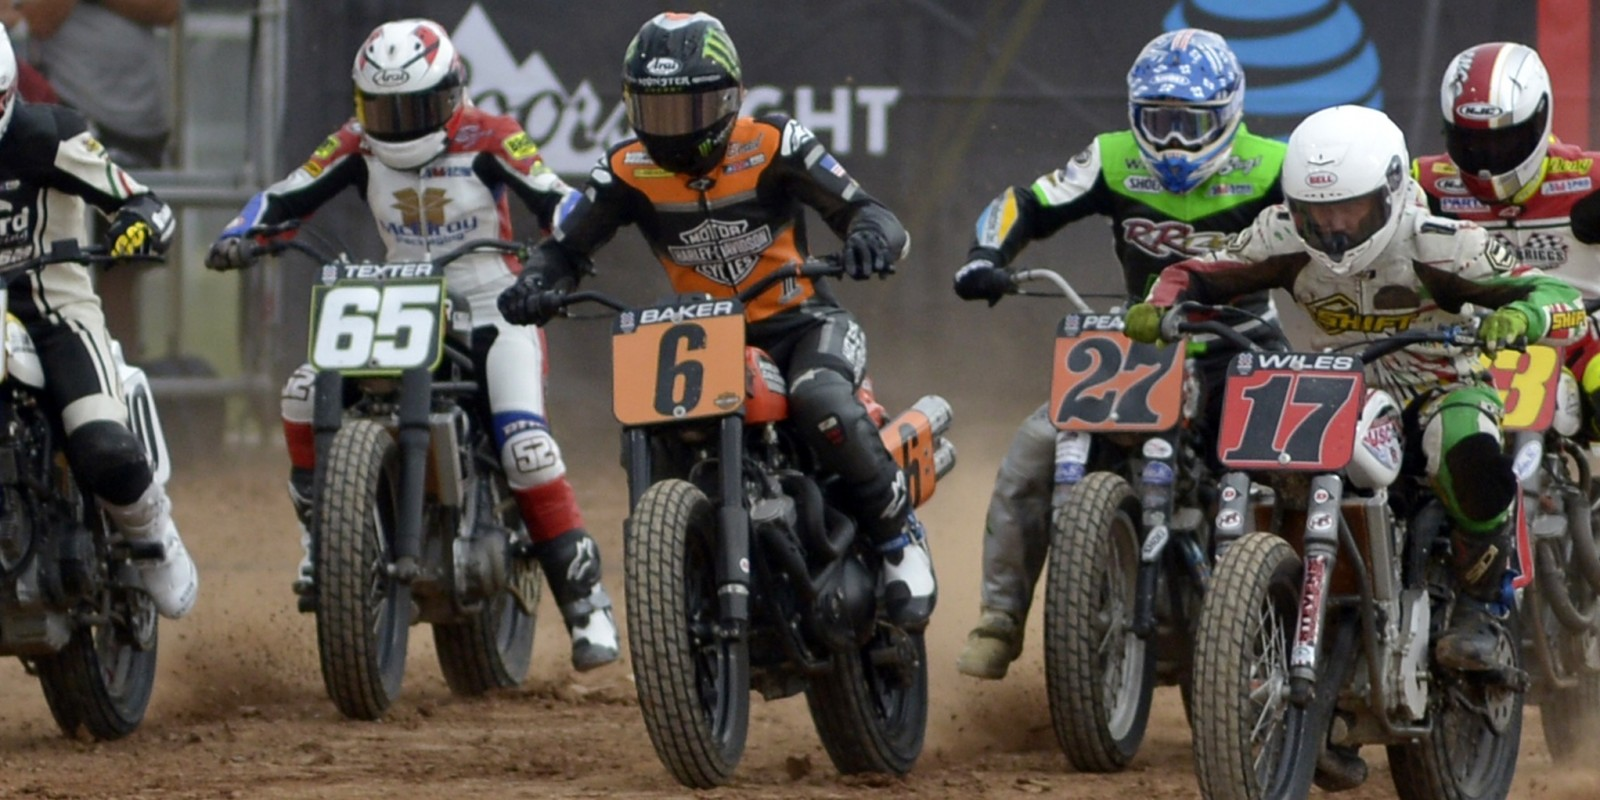 Flat Track shots of Monster athletes at the 2016 X-Games in Austin, Texas.